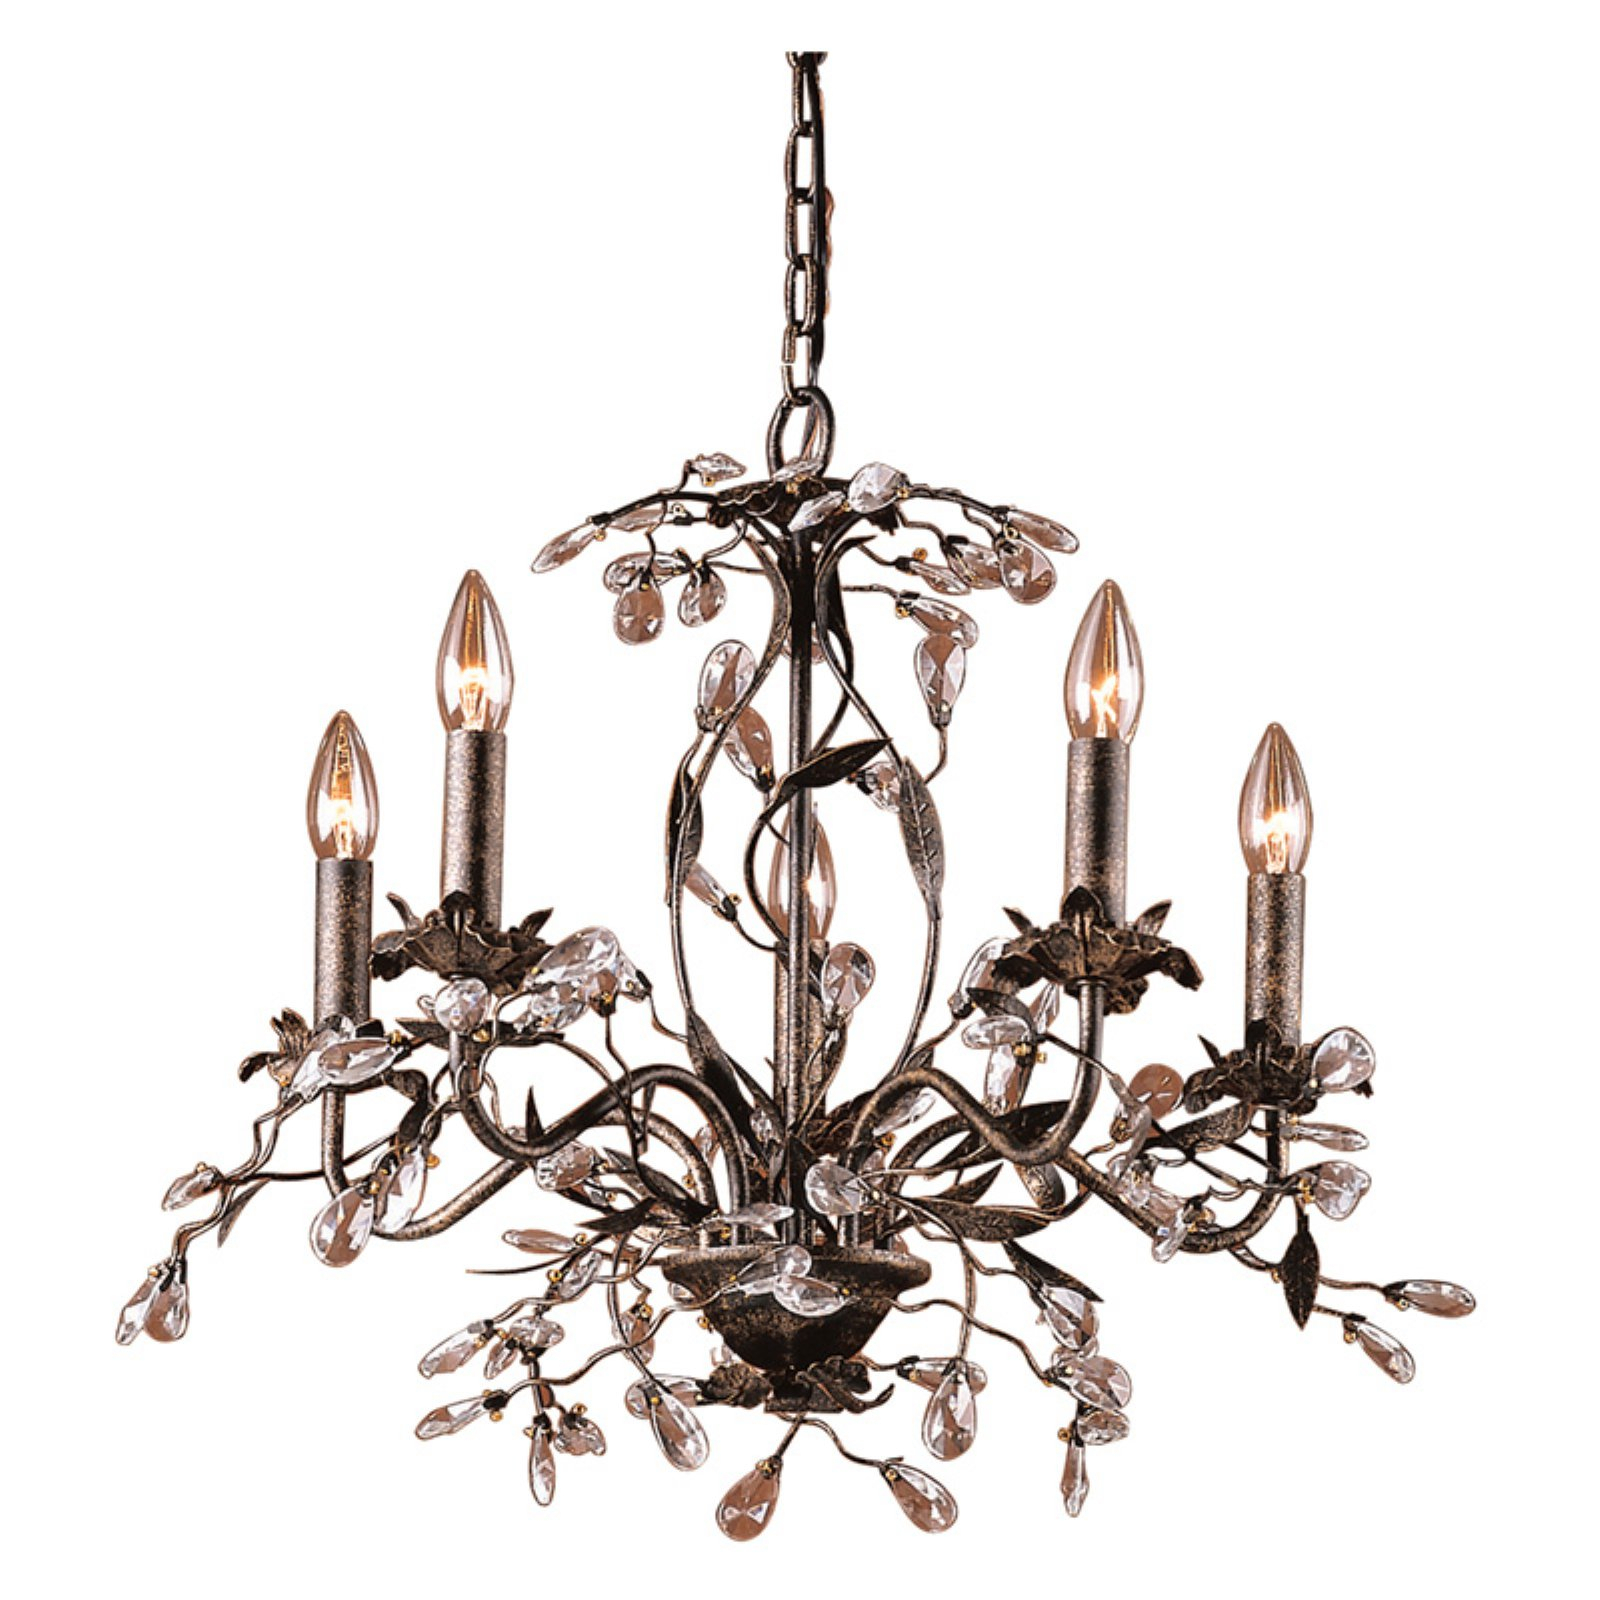 Elk Lighting Circeo Chandelier 8053/5 – 21W In. | Products Inside Hesse 5 Light Candle Style Chandeliers (Gallery 9 of 30)